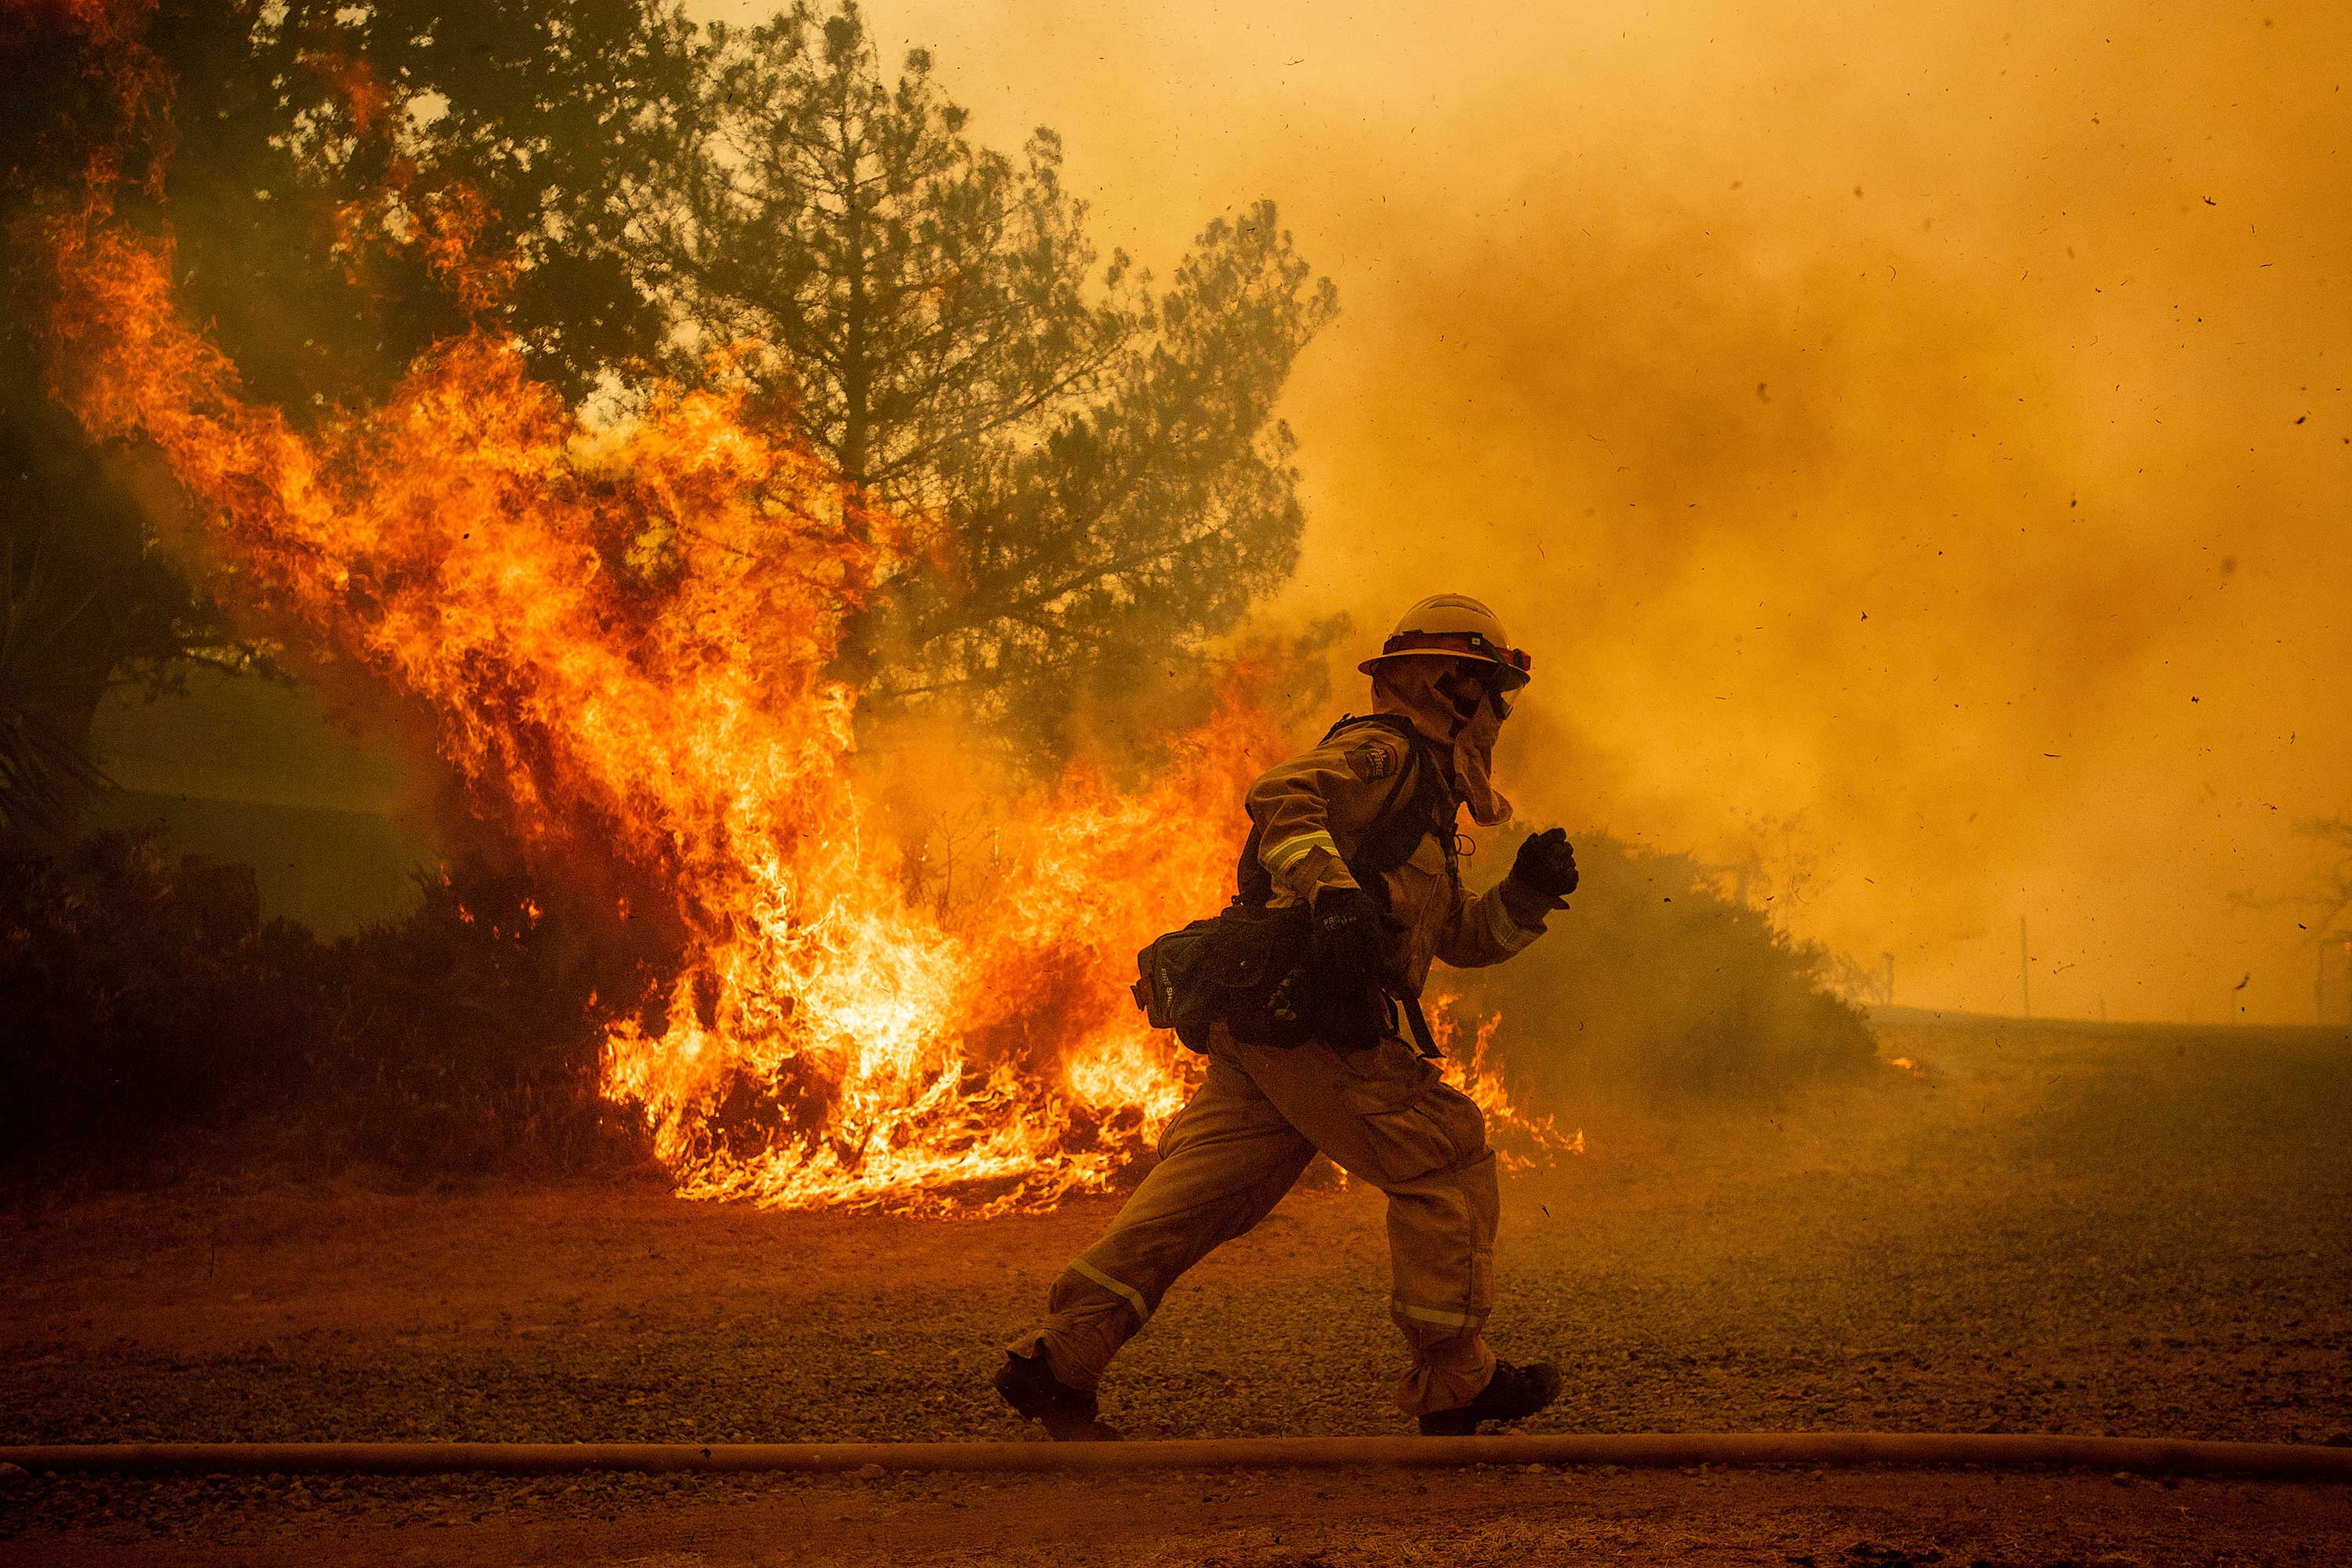 "<div class=""meta image-caption""><div class=""origin-logo origin-image none""><span>none</span></div><span class=""caption-text"">A firefighter runs while trying to save a home as a wildfire tears through Lakeport, Calif., Tuesday, July 31, 2018. (Noah Berger/AP Photo)</span></div>"